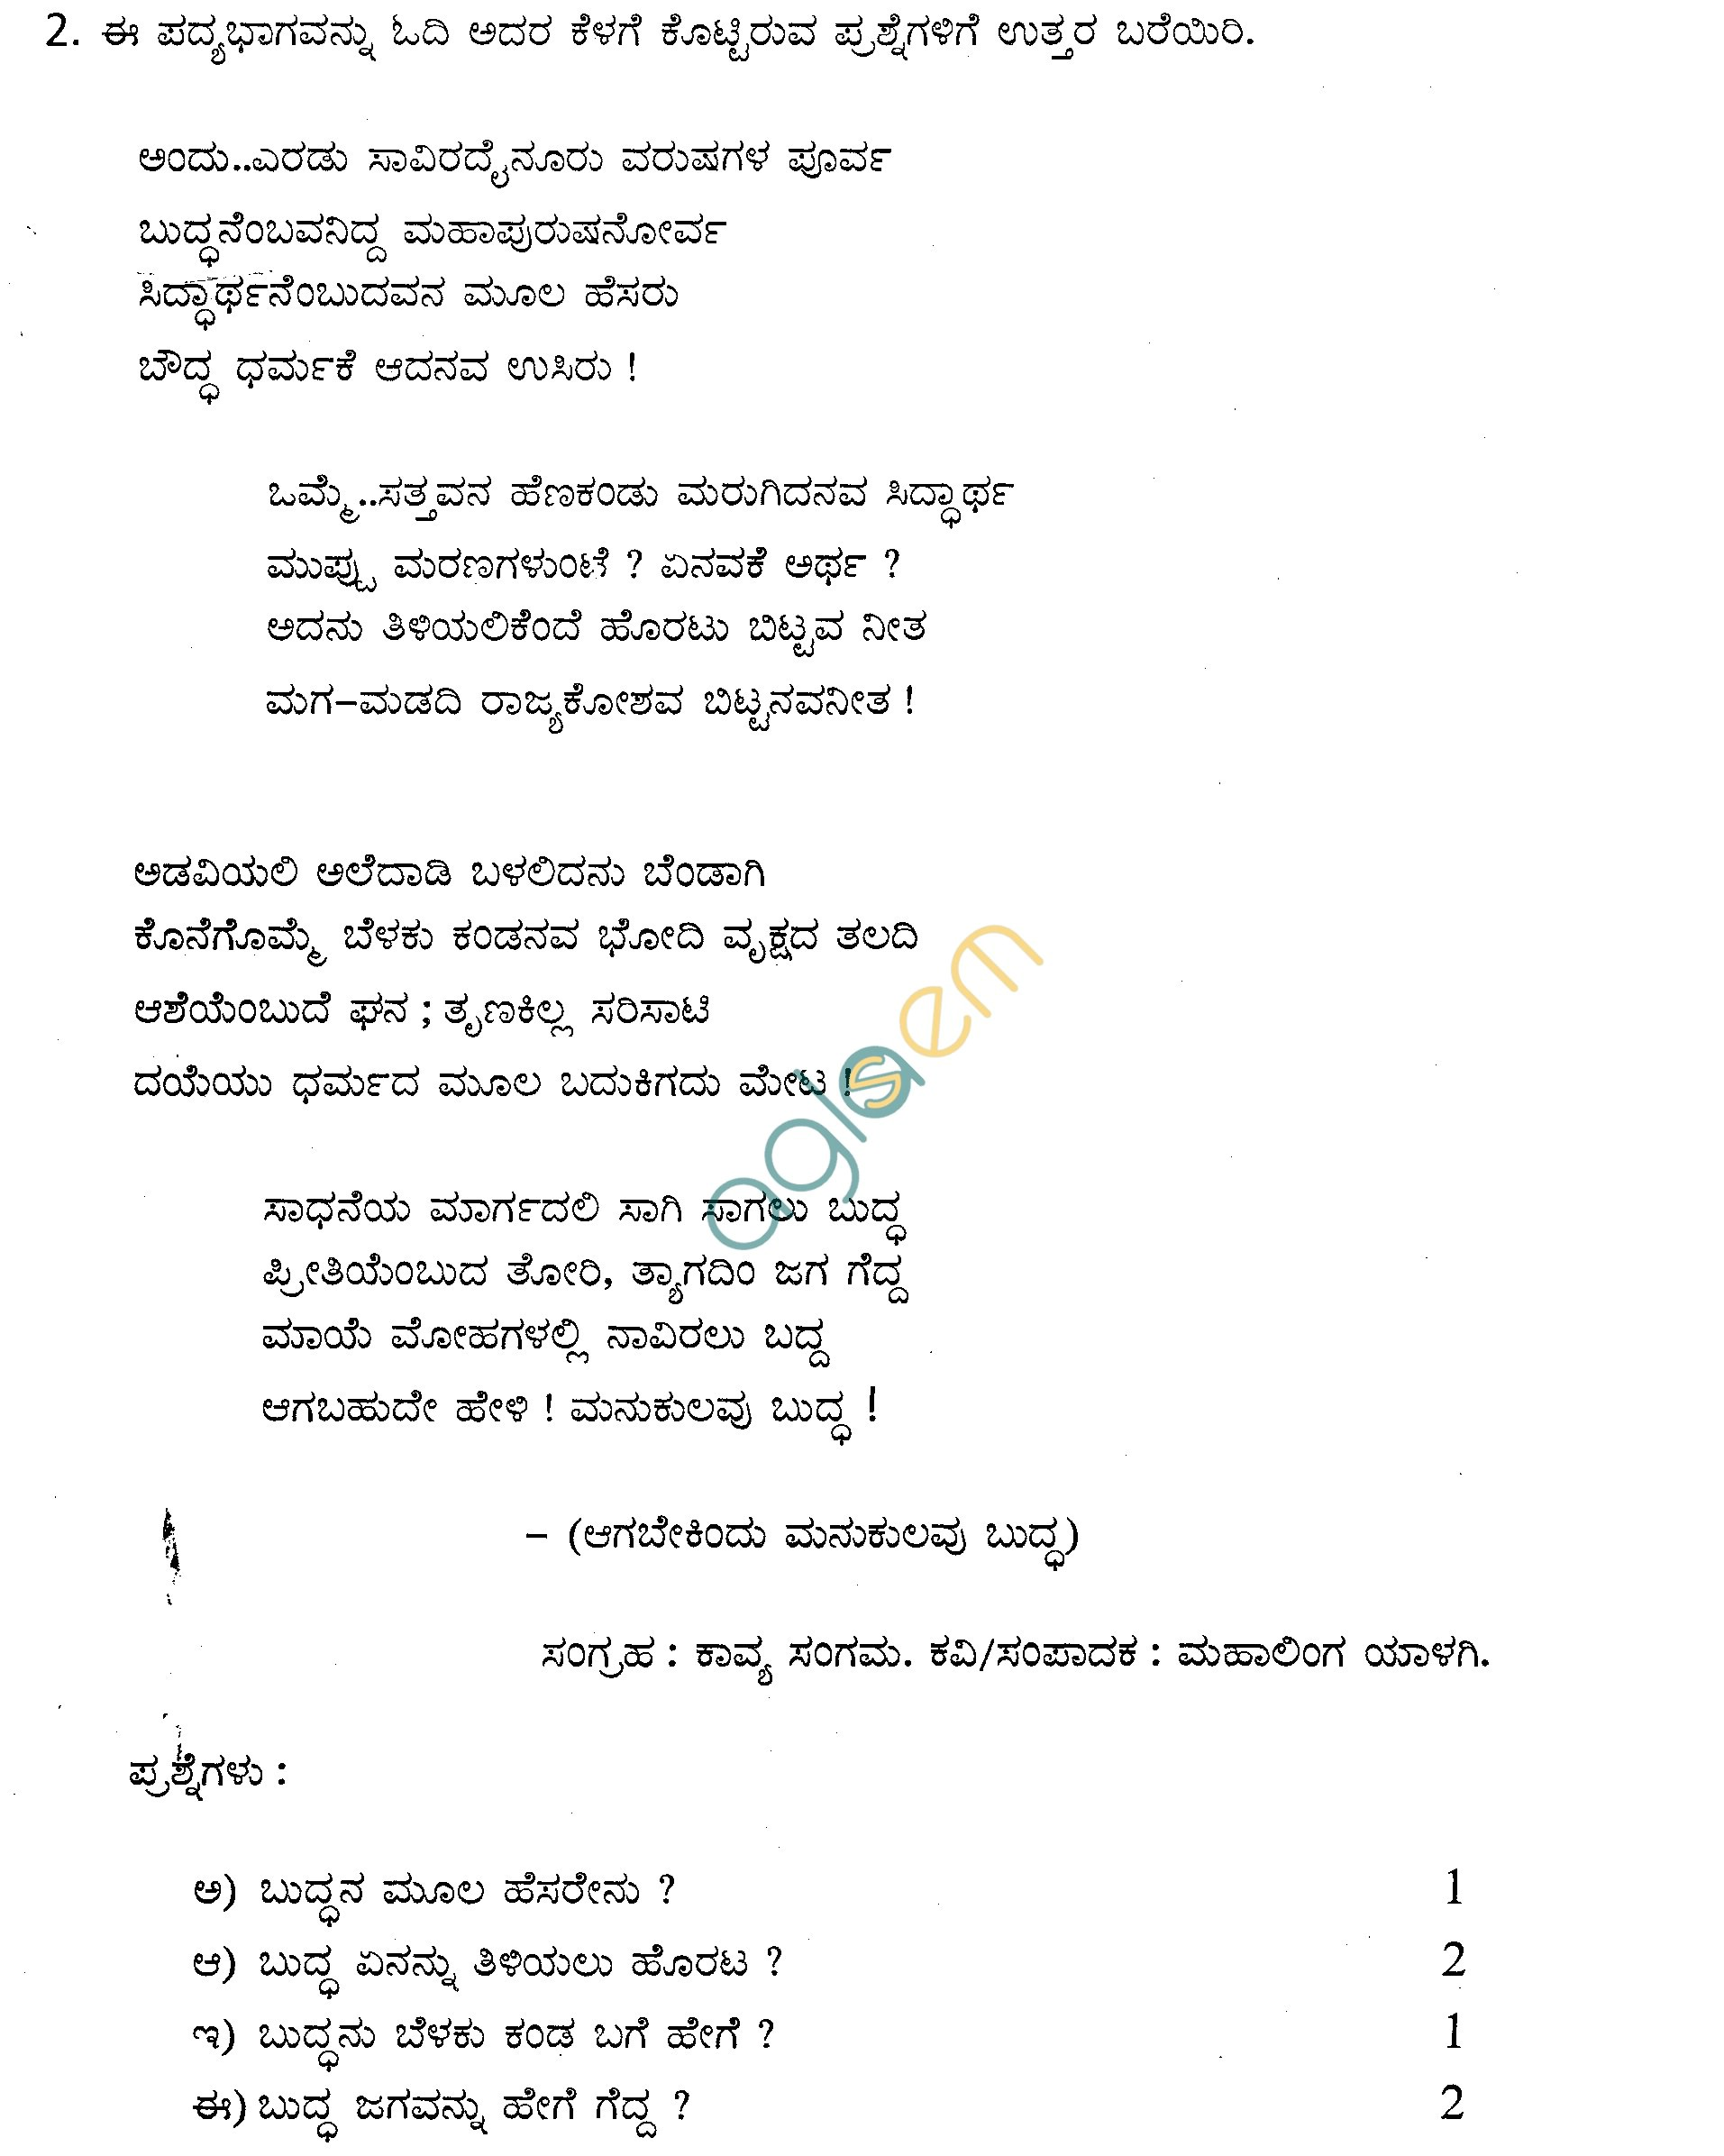 CBSE Class IX & X Sample Papers 2014 (Second Term) Kannada